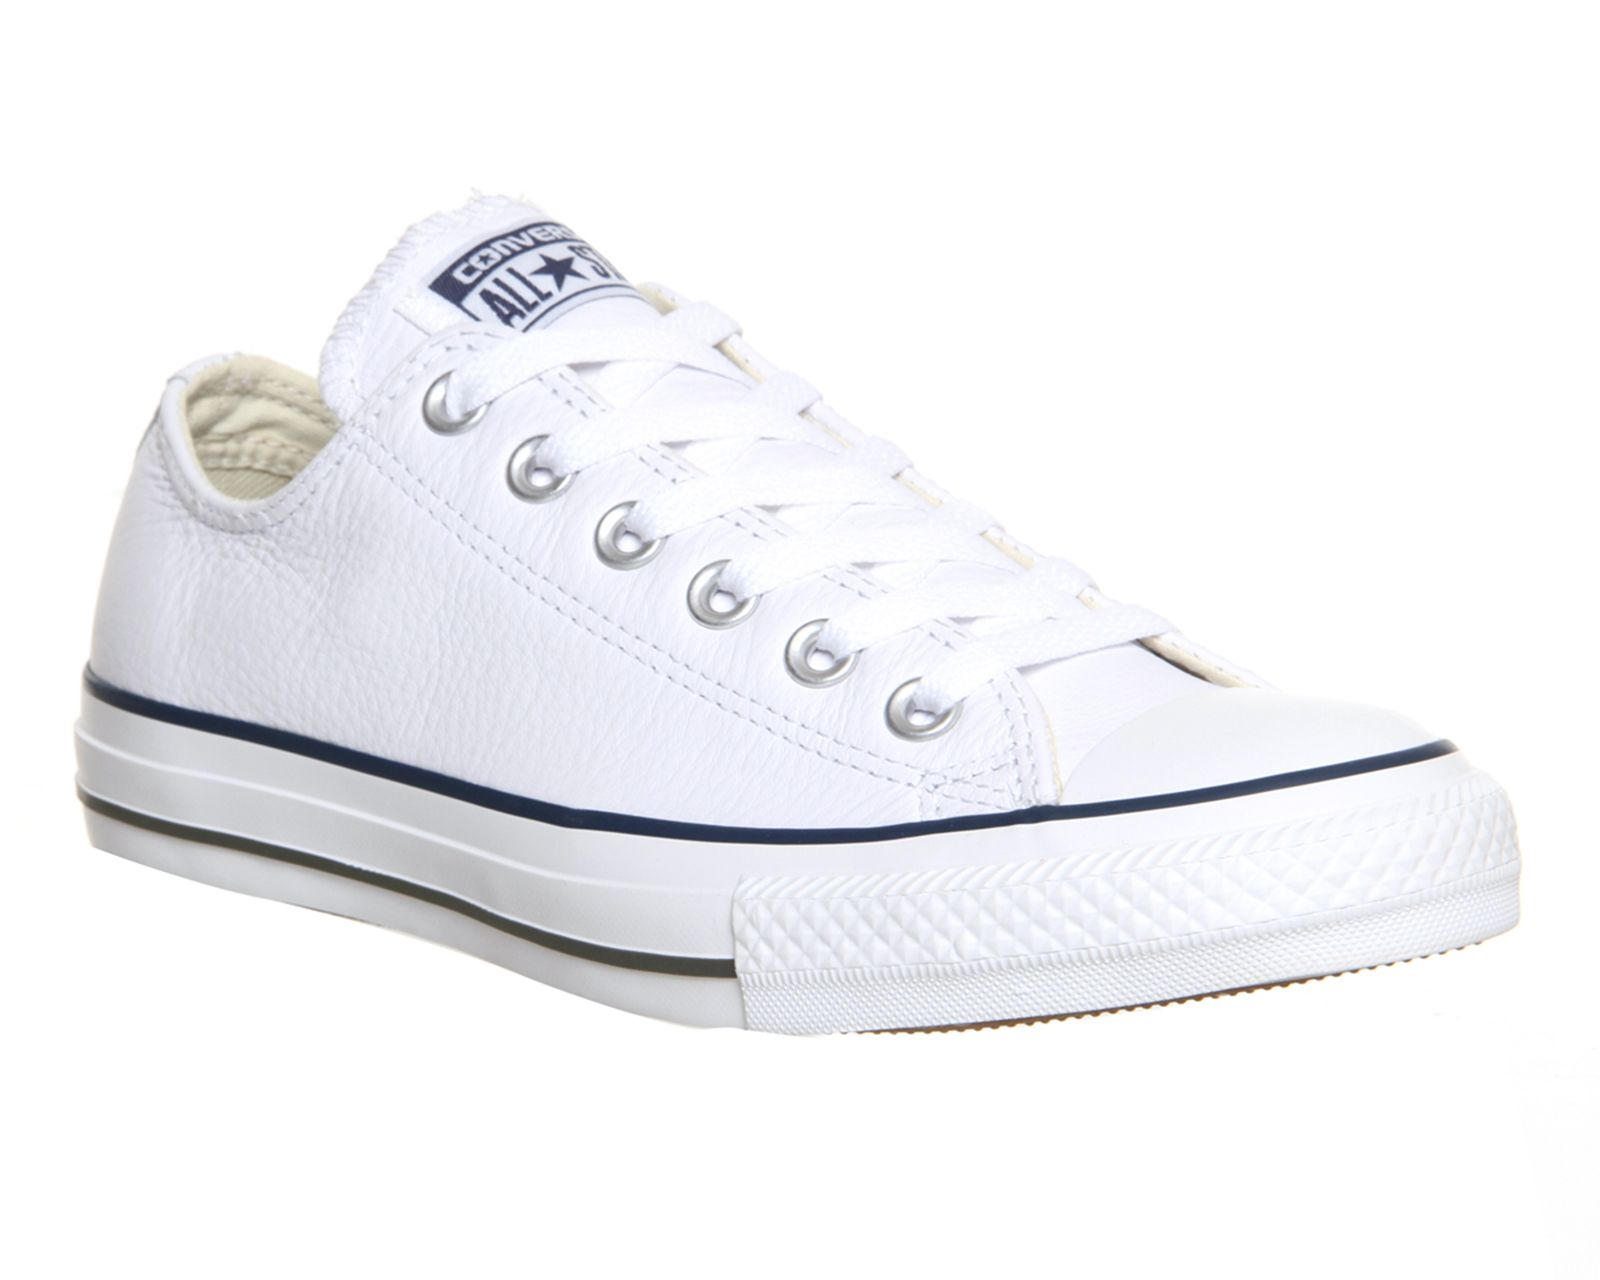 Buy White Navy Exclusive Converse All Star Low Leather from OFFICE.co.uk.